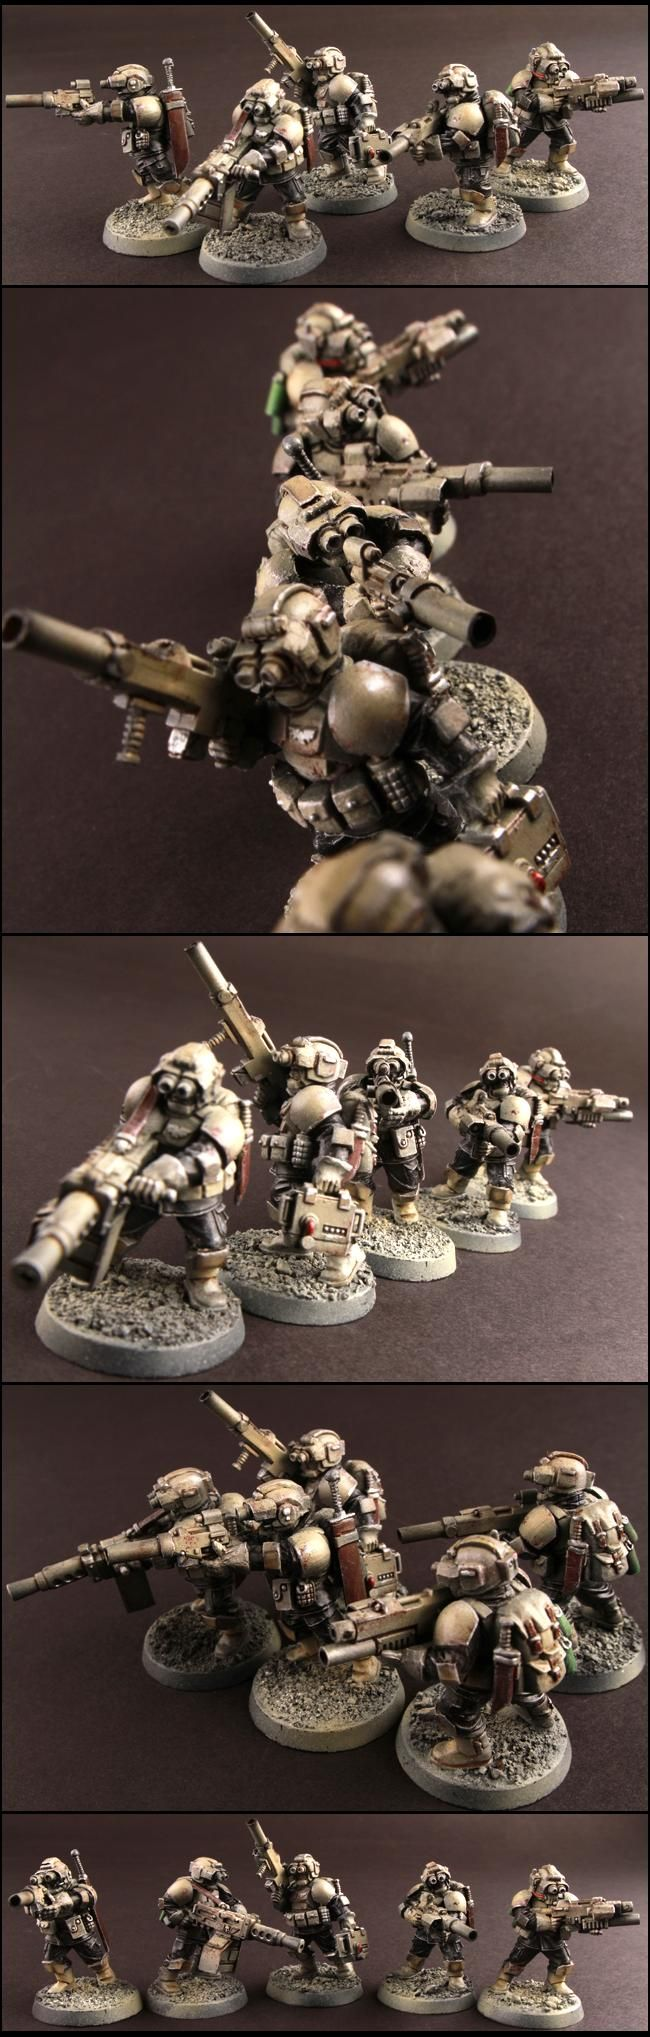 These guys would make awesome PCs for an only war campaign.